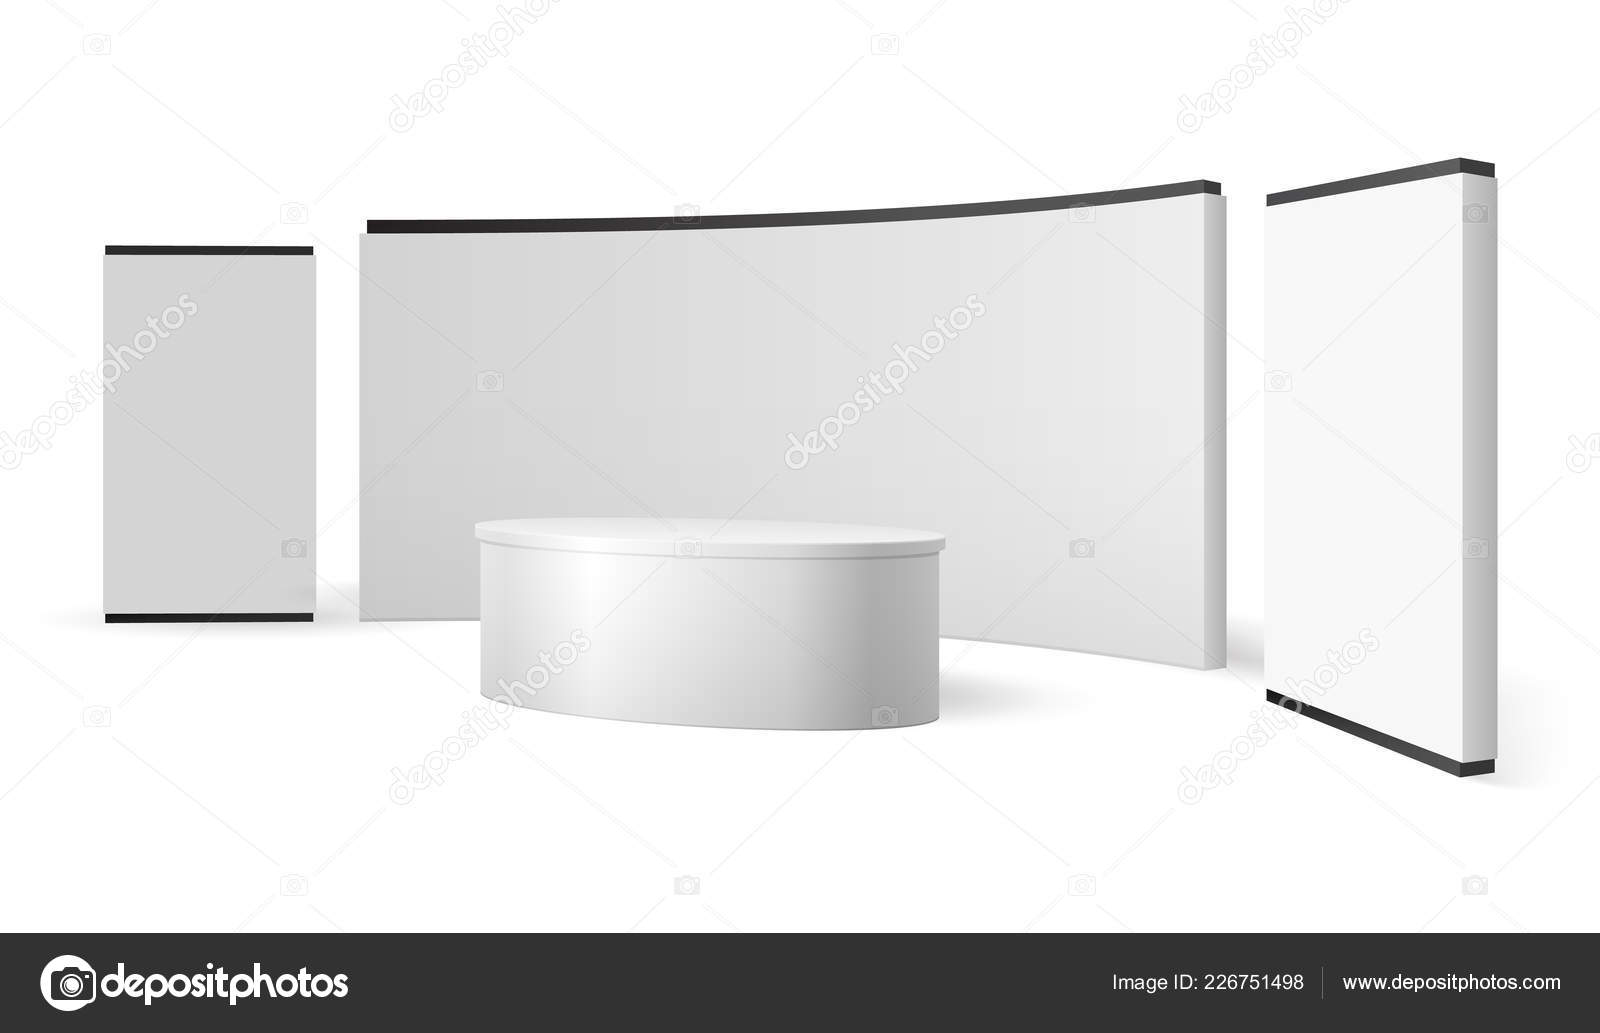 Trade Exhibition Stand Mockup Free : White exhibition stand. blank trade show booth promotional display